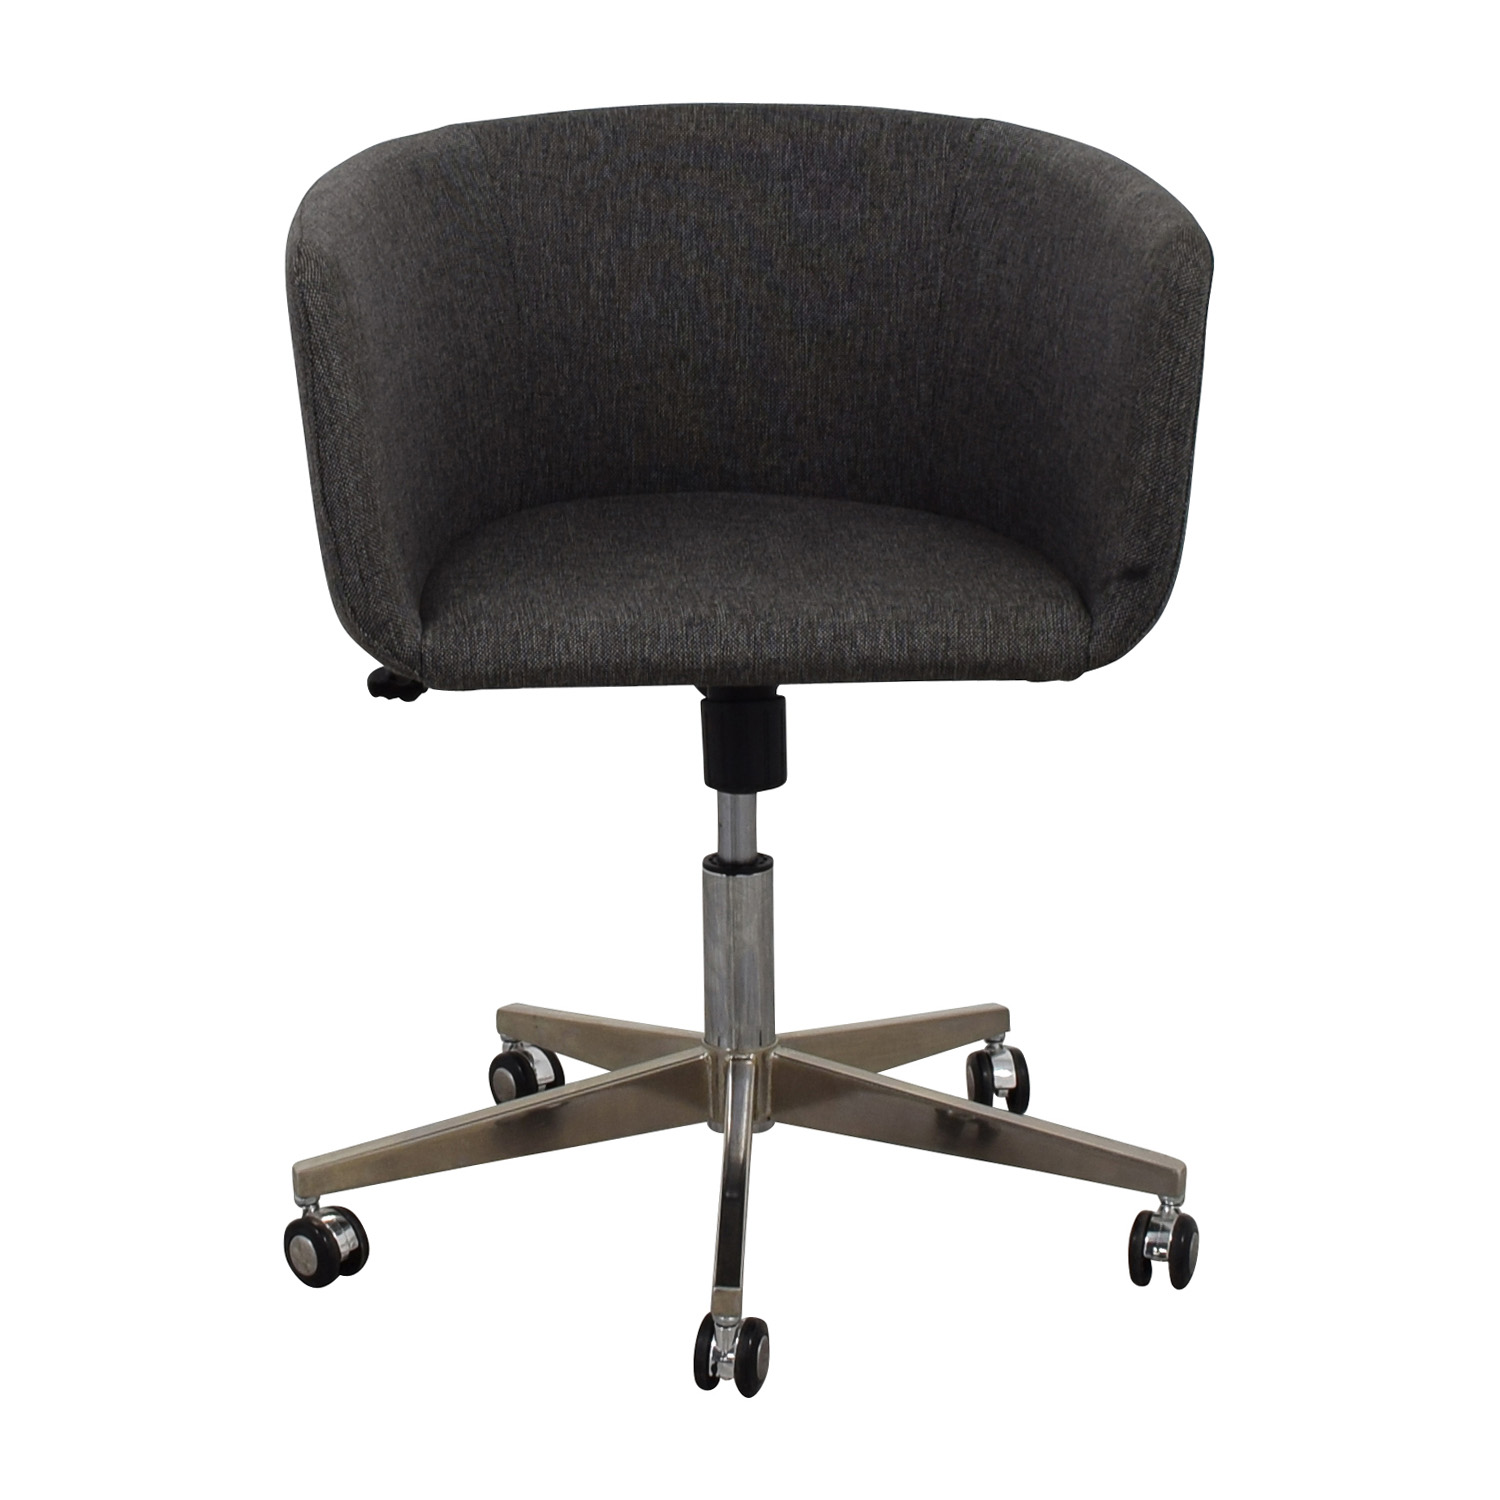 Best 30 office chair modern design ideas of modern office for Contemporary office chairs modern